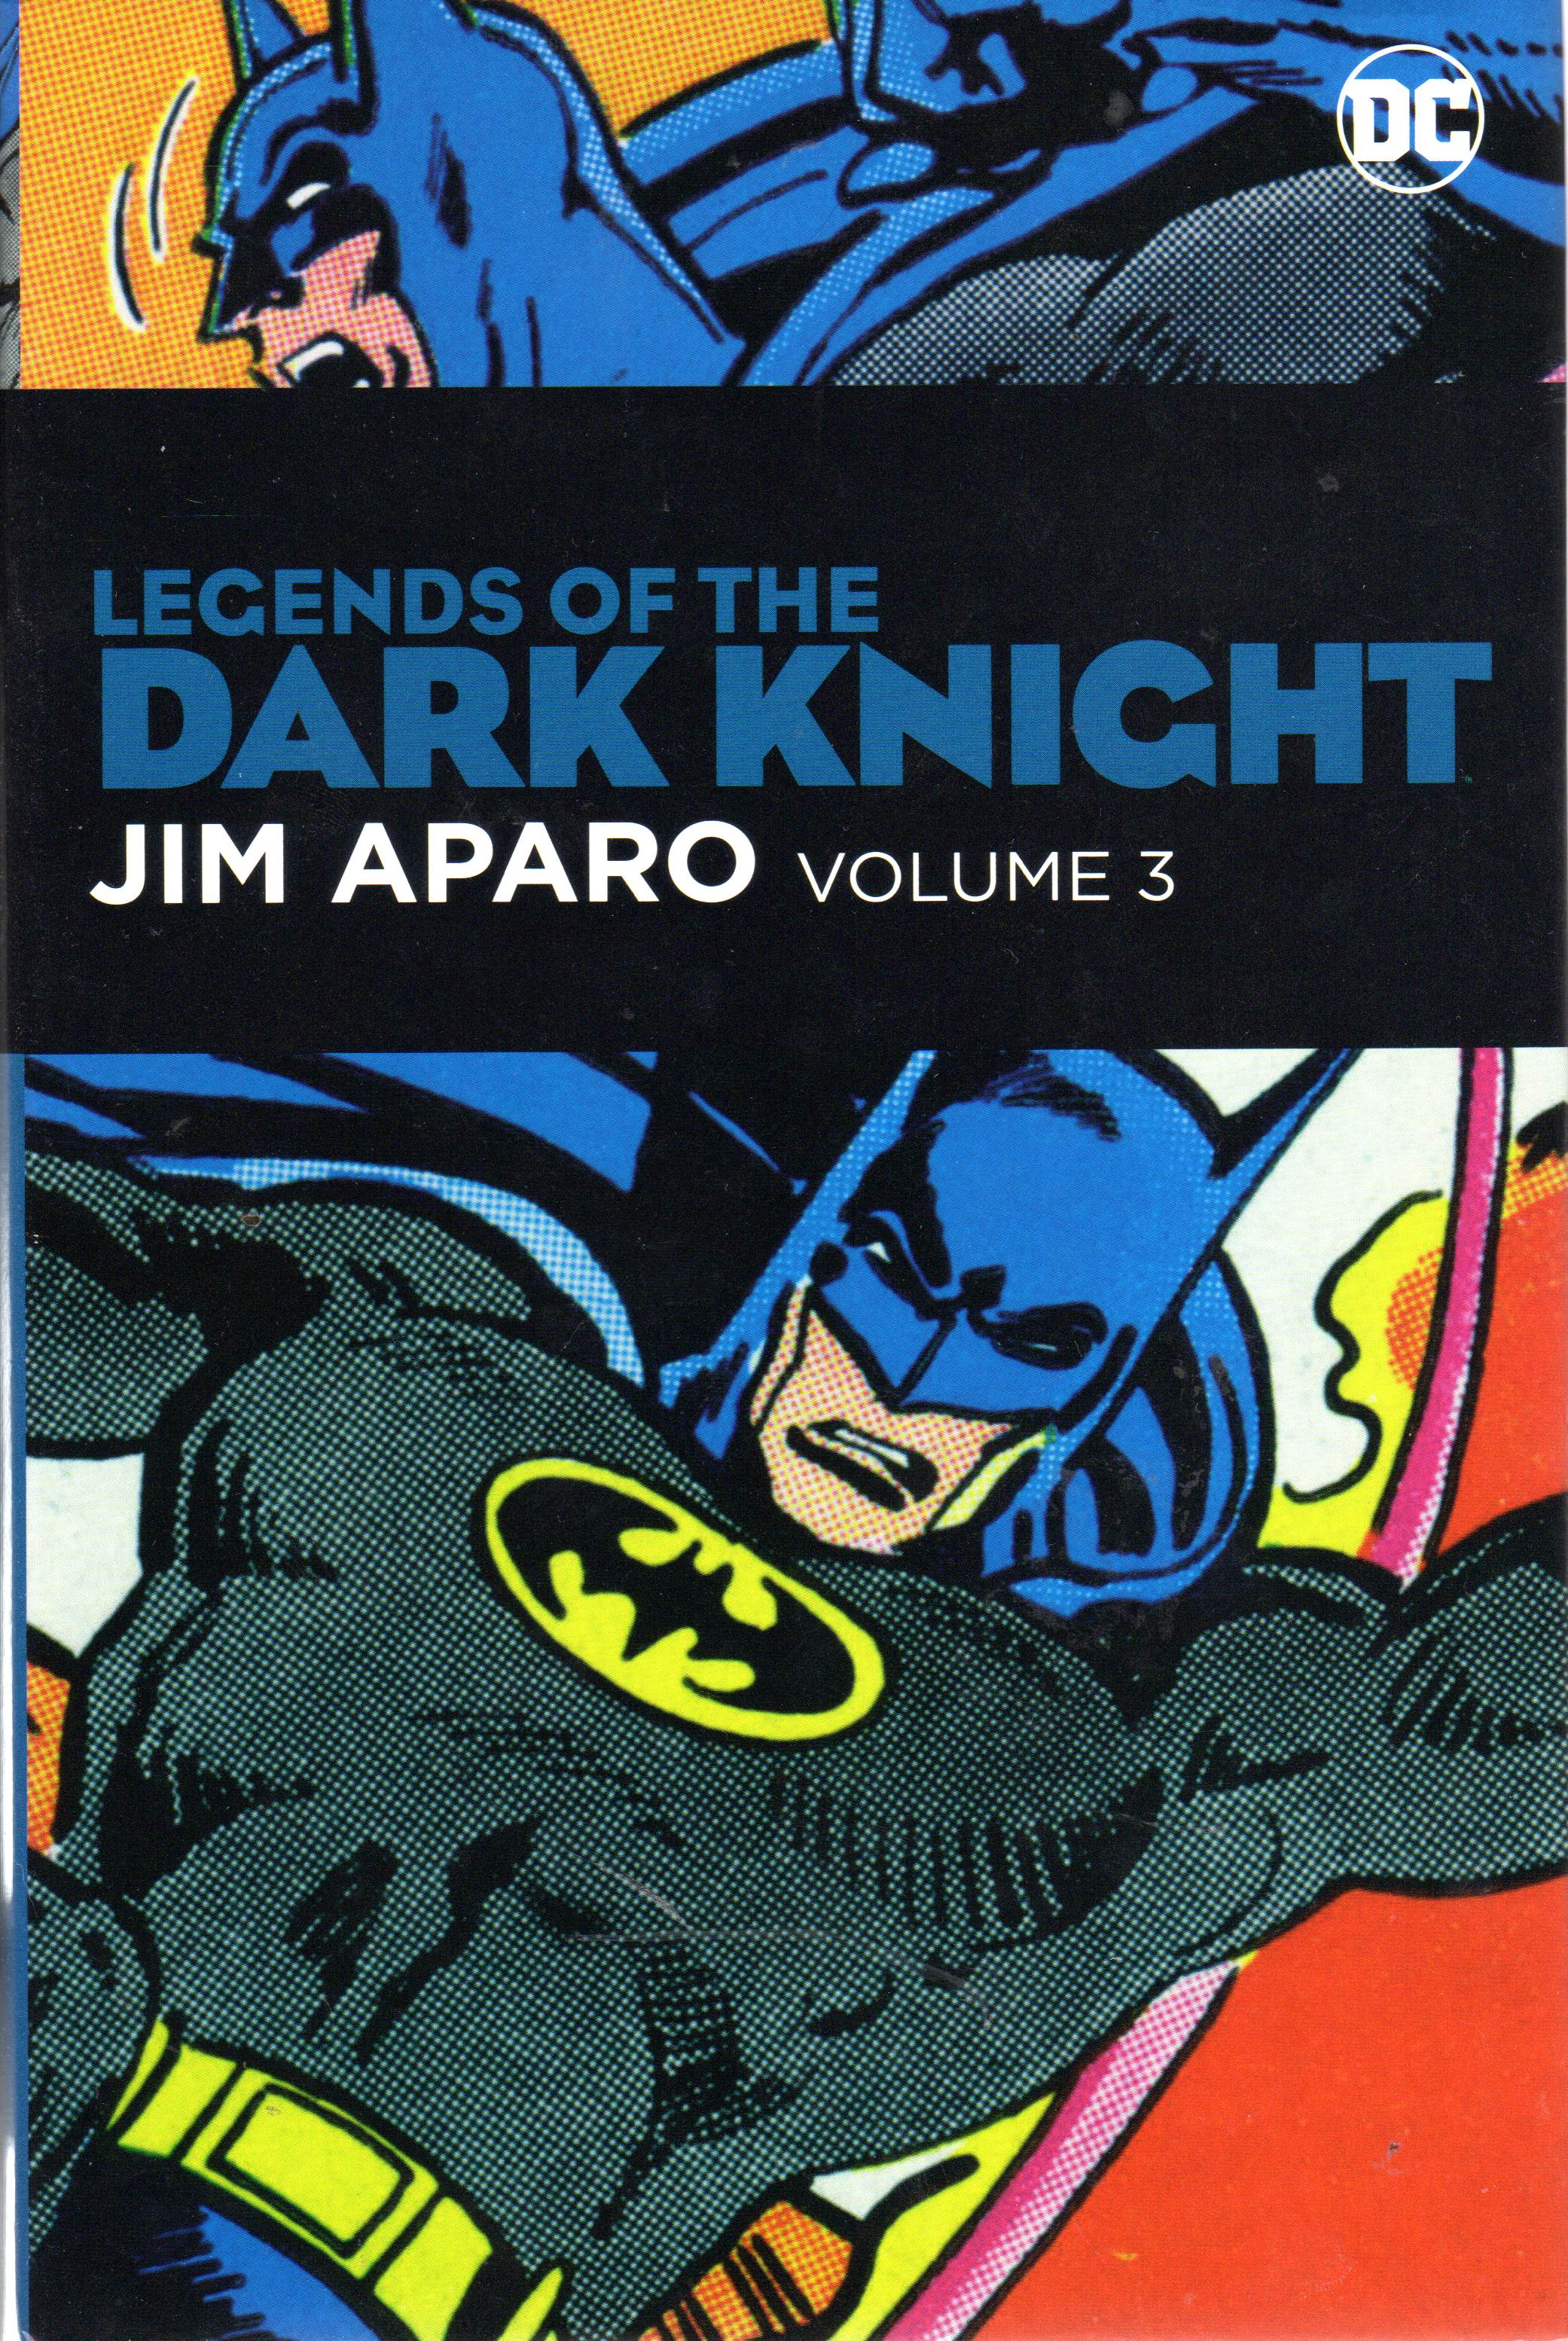 Fashion of the bat an extremely thorough examination of batman s - Legends Of The Dark Knight Jim Aparo Volume 3 By A Lot Of Different People And Um Jim Aparo 49 99 549 Pgs Fc Dc